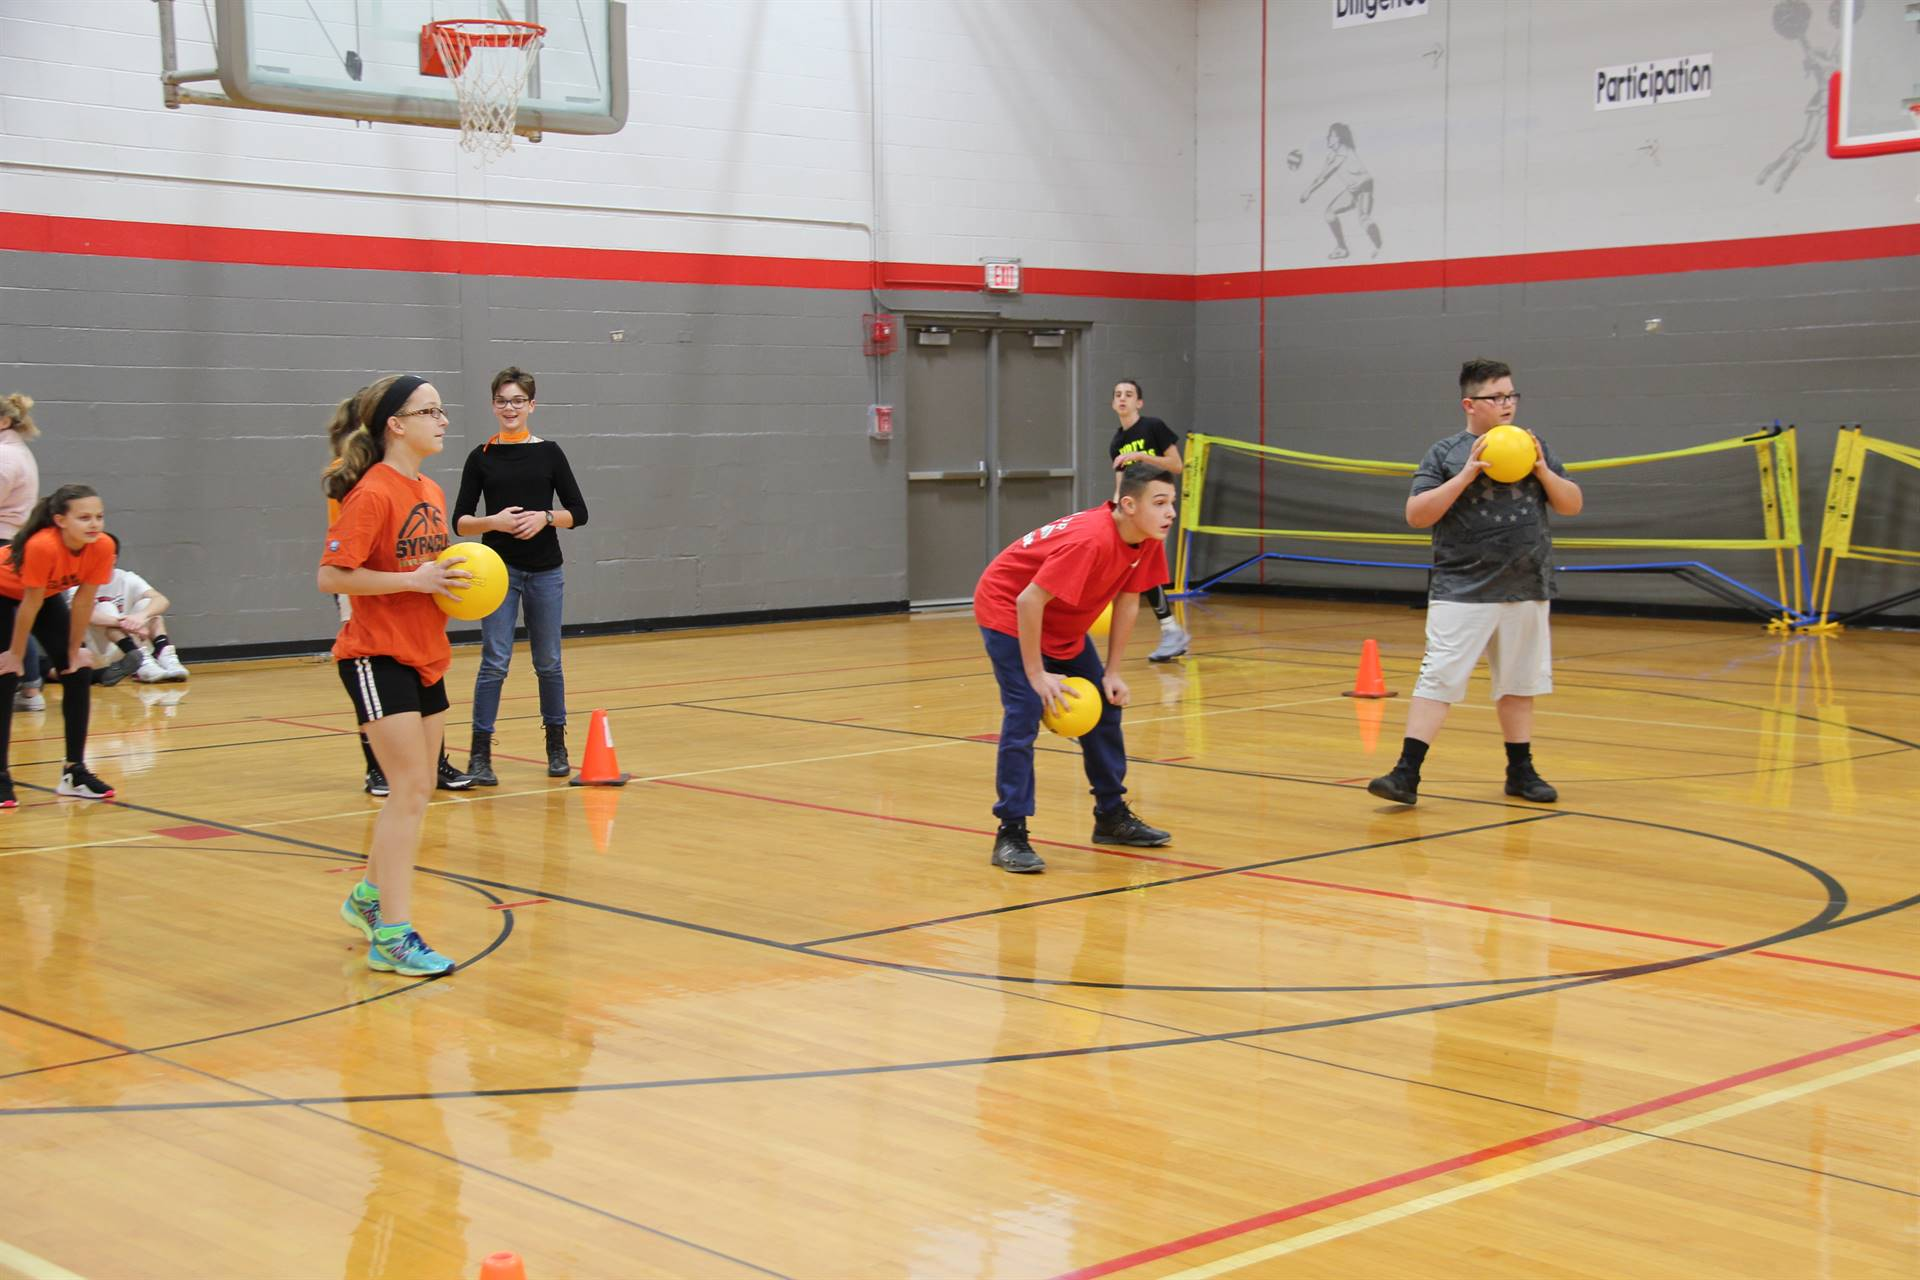 students playing dodgeball in gym